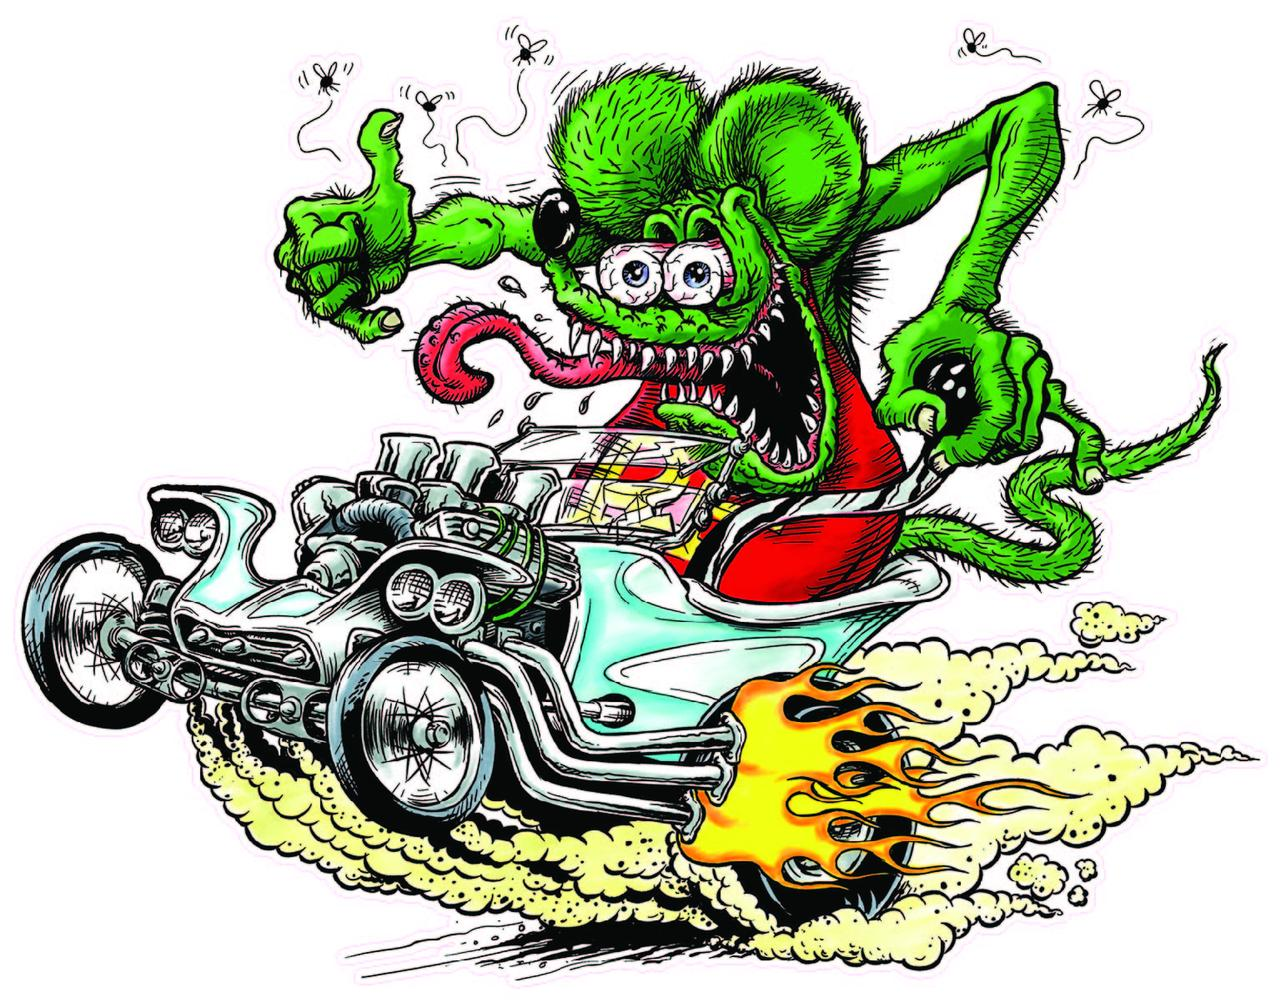 Rat fink California License Plate Character goods Toy Interior